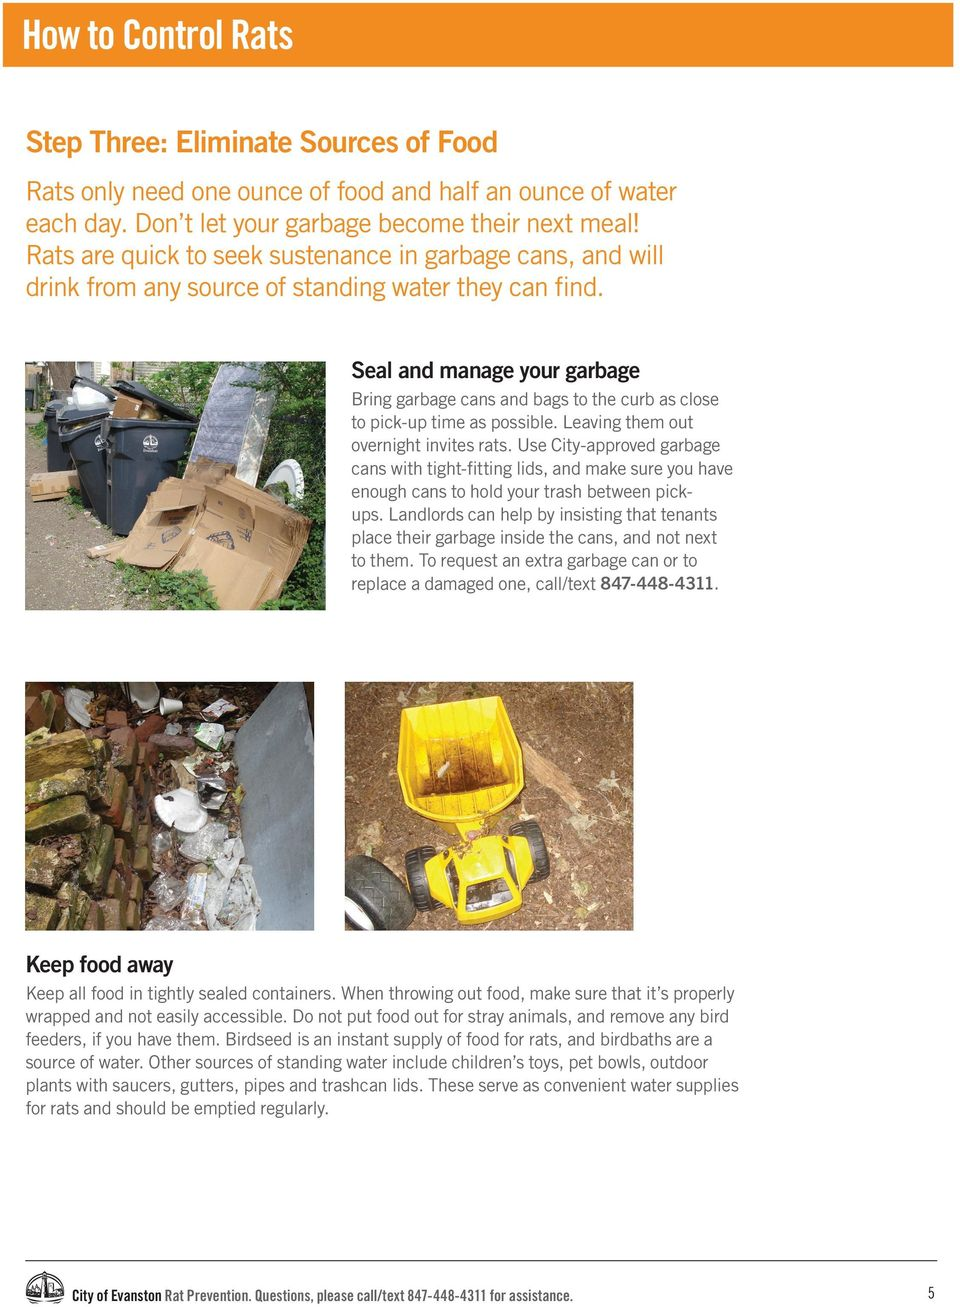 Seal and manage your garbage Bring garbage cans and bags to the curb as close to pick-up time as possible. Leaving them out overnight invites rats.